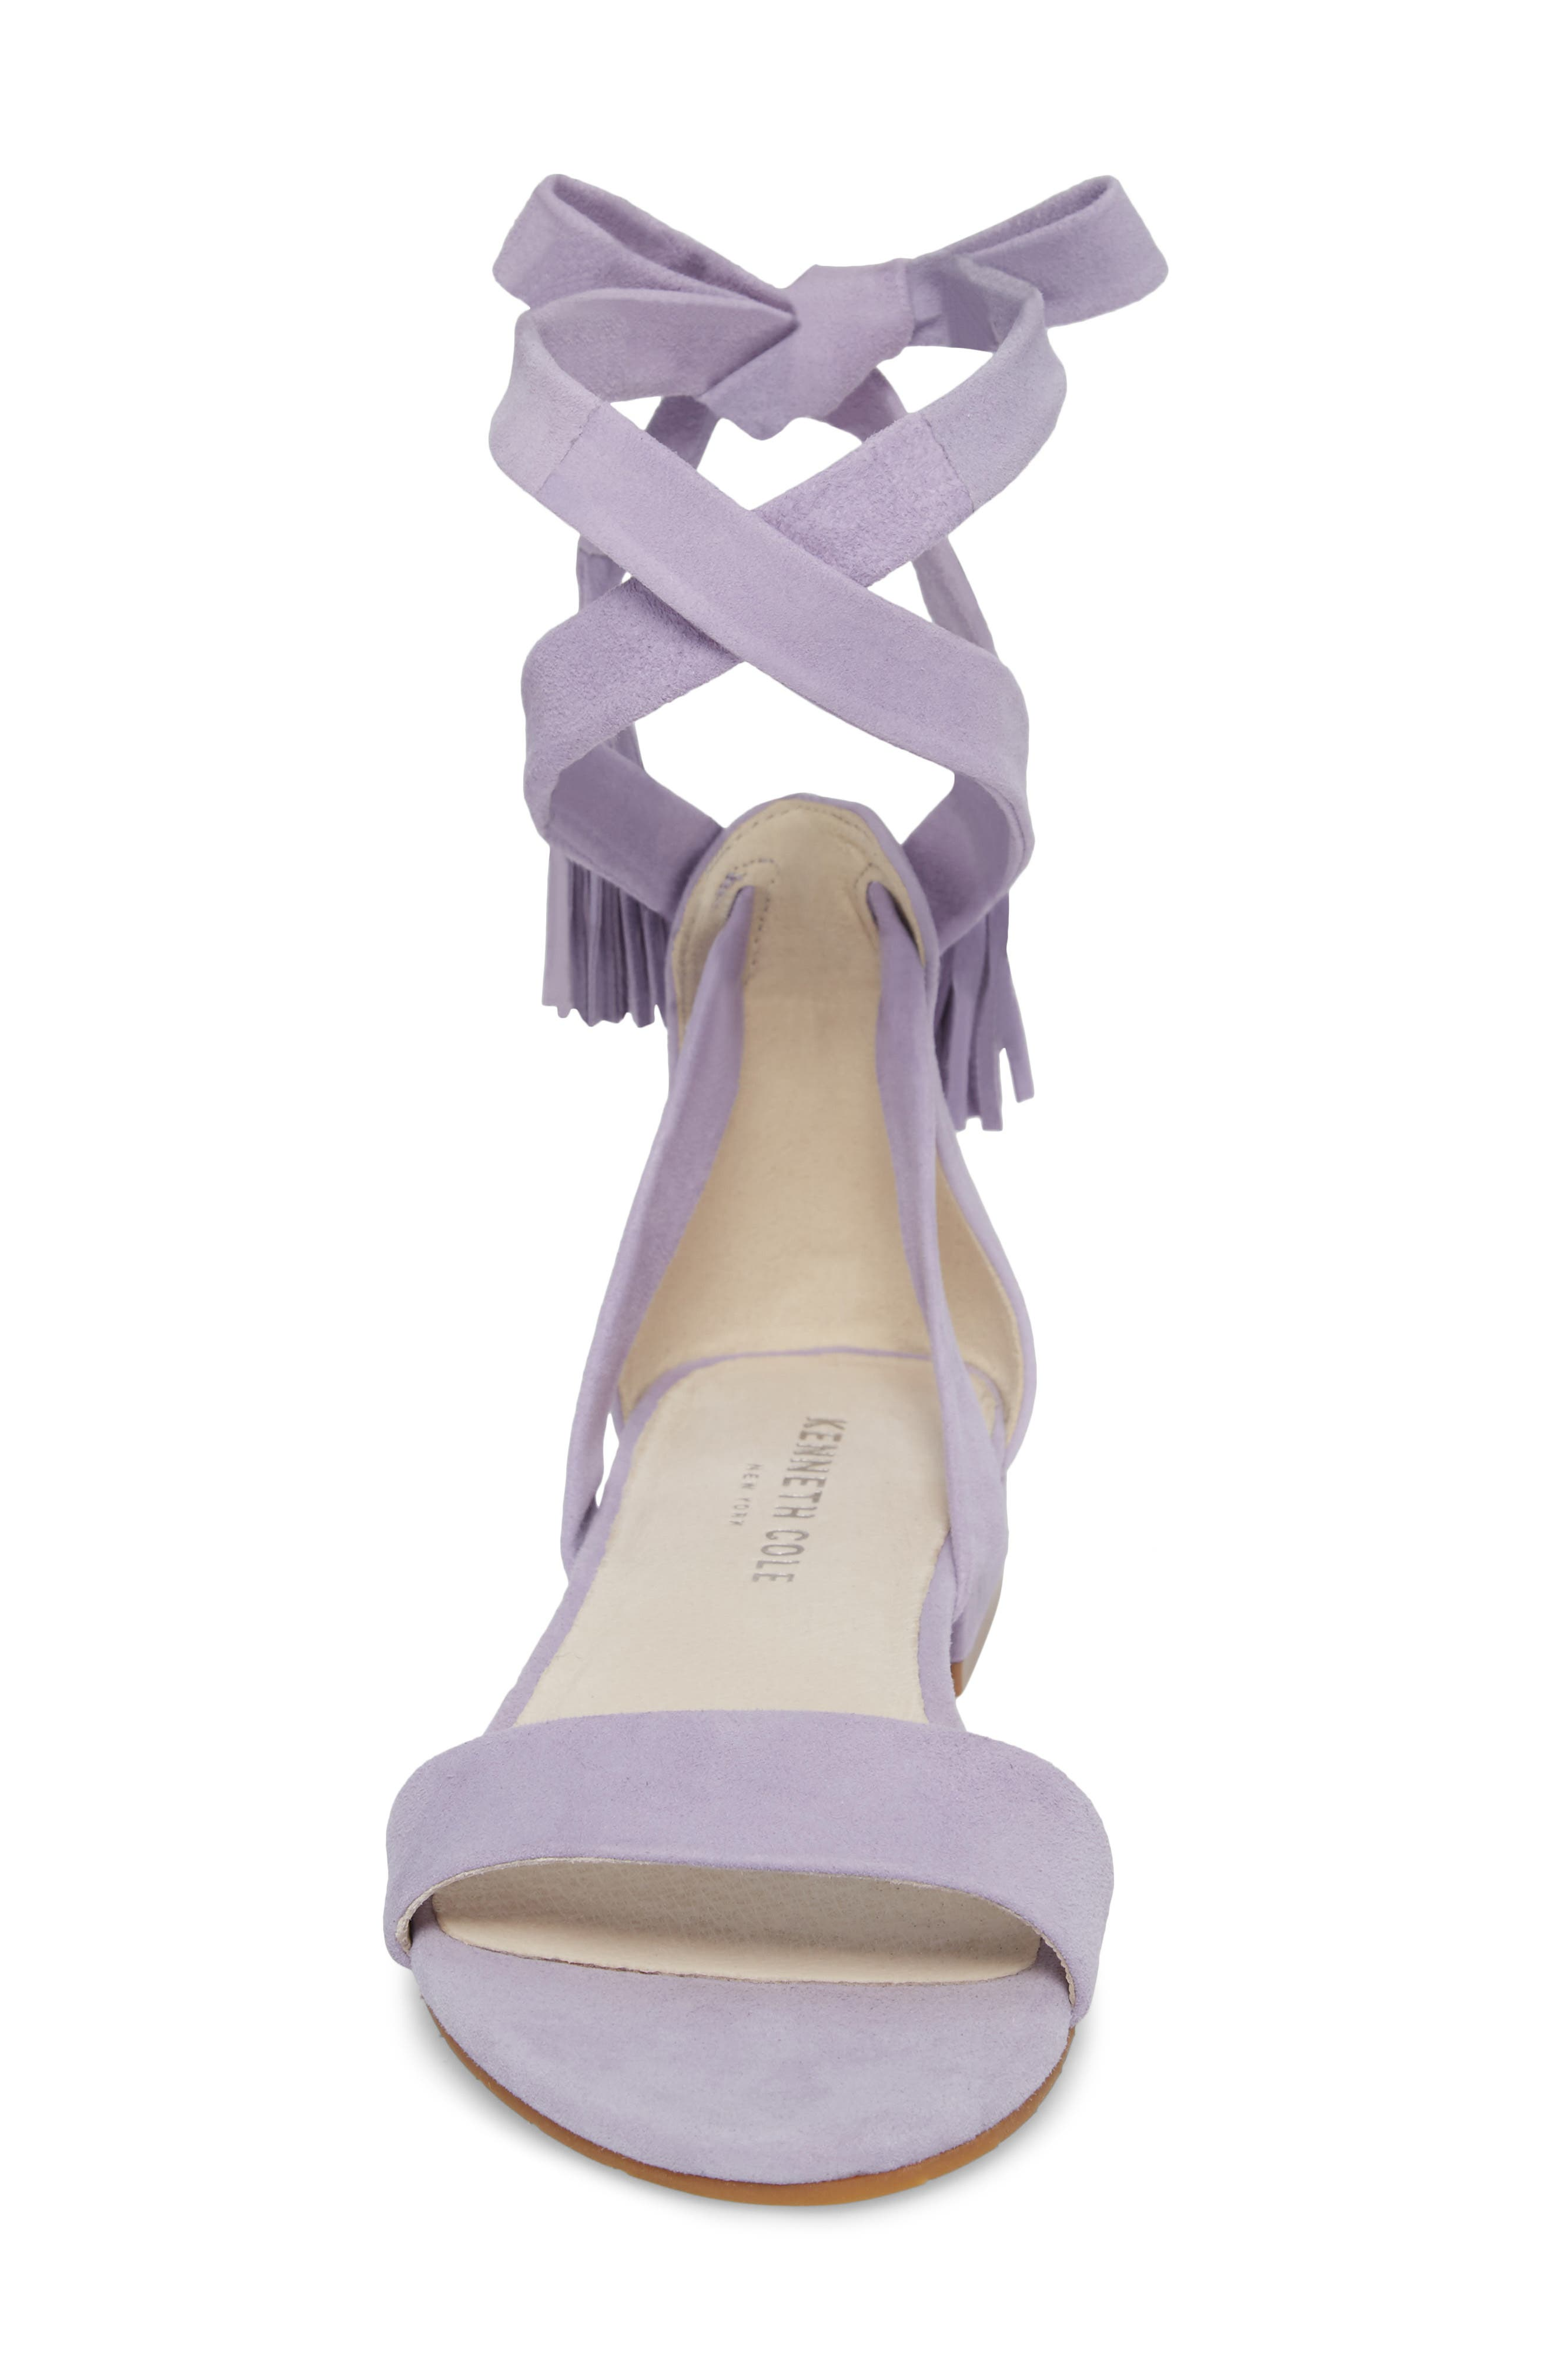 Valen Tassel Lace-Up Sandal,                             Alternate thumbnail 4, color,                             530